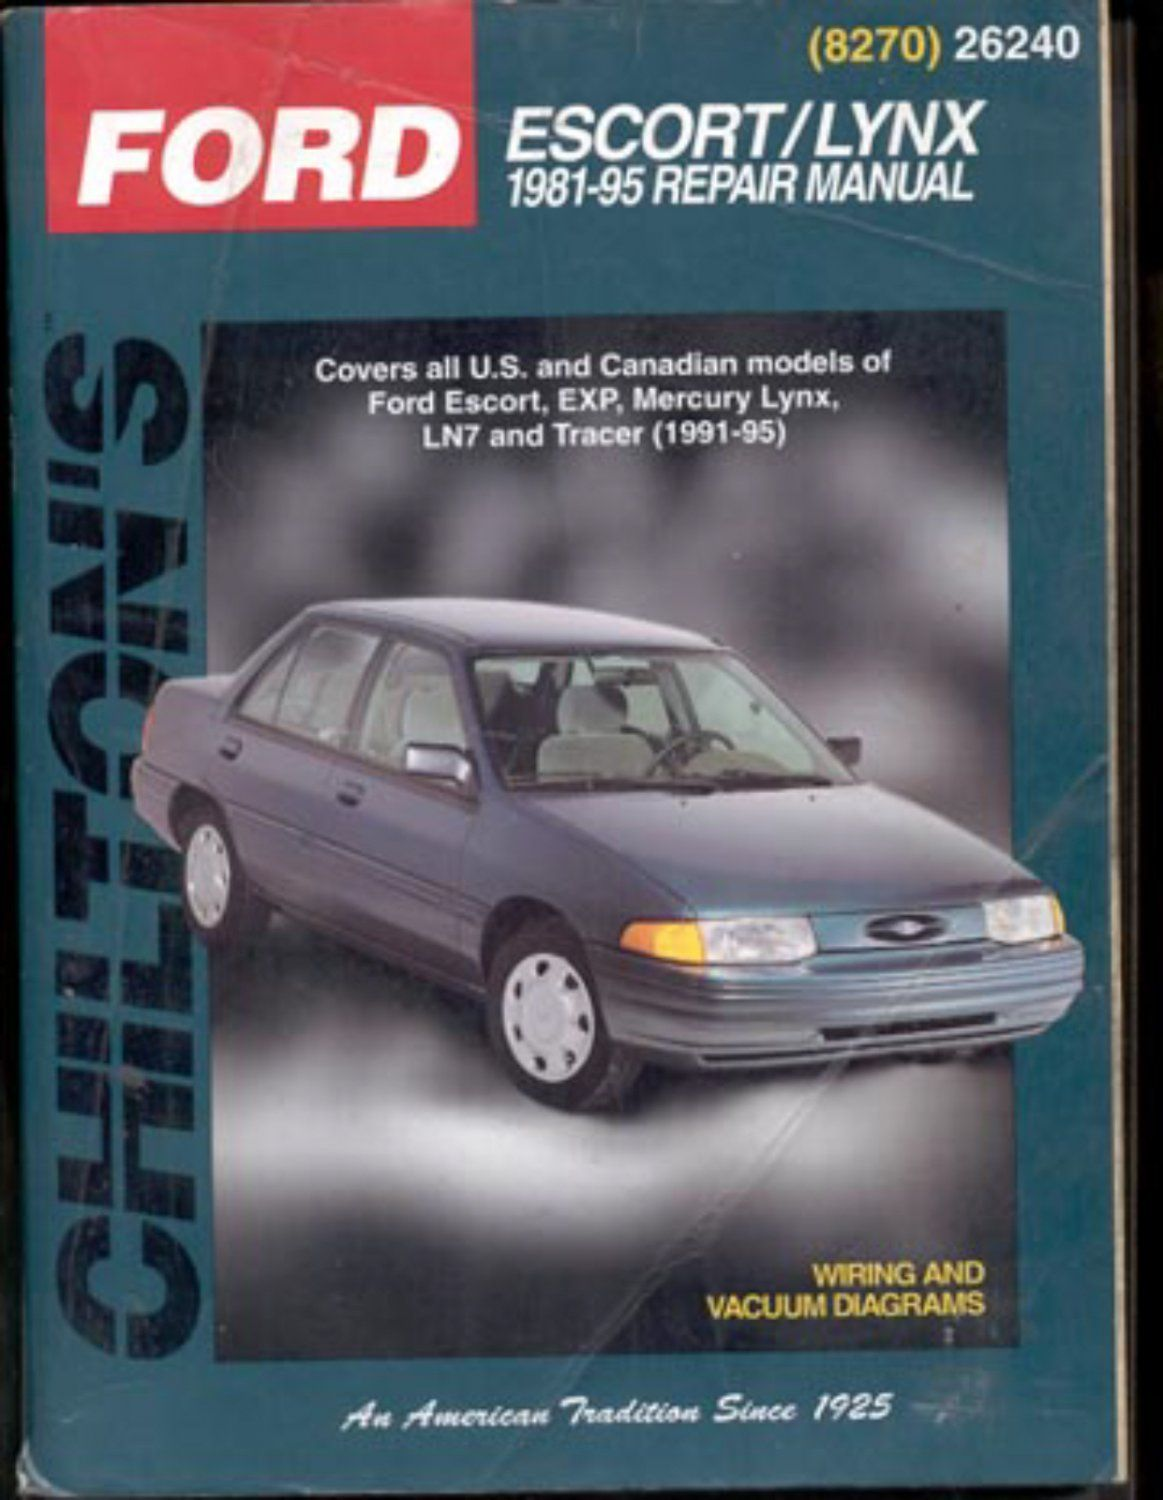 chilton s ford escort lynx 1981 95 repair manual books and rh pinterest com Ford 3000 Tractor Manual Ford 600 Manual